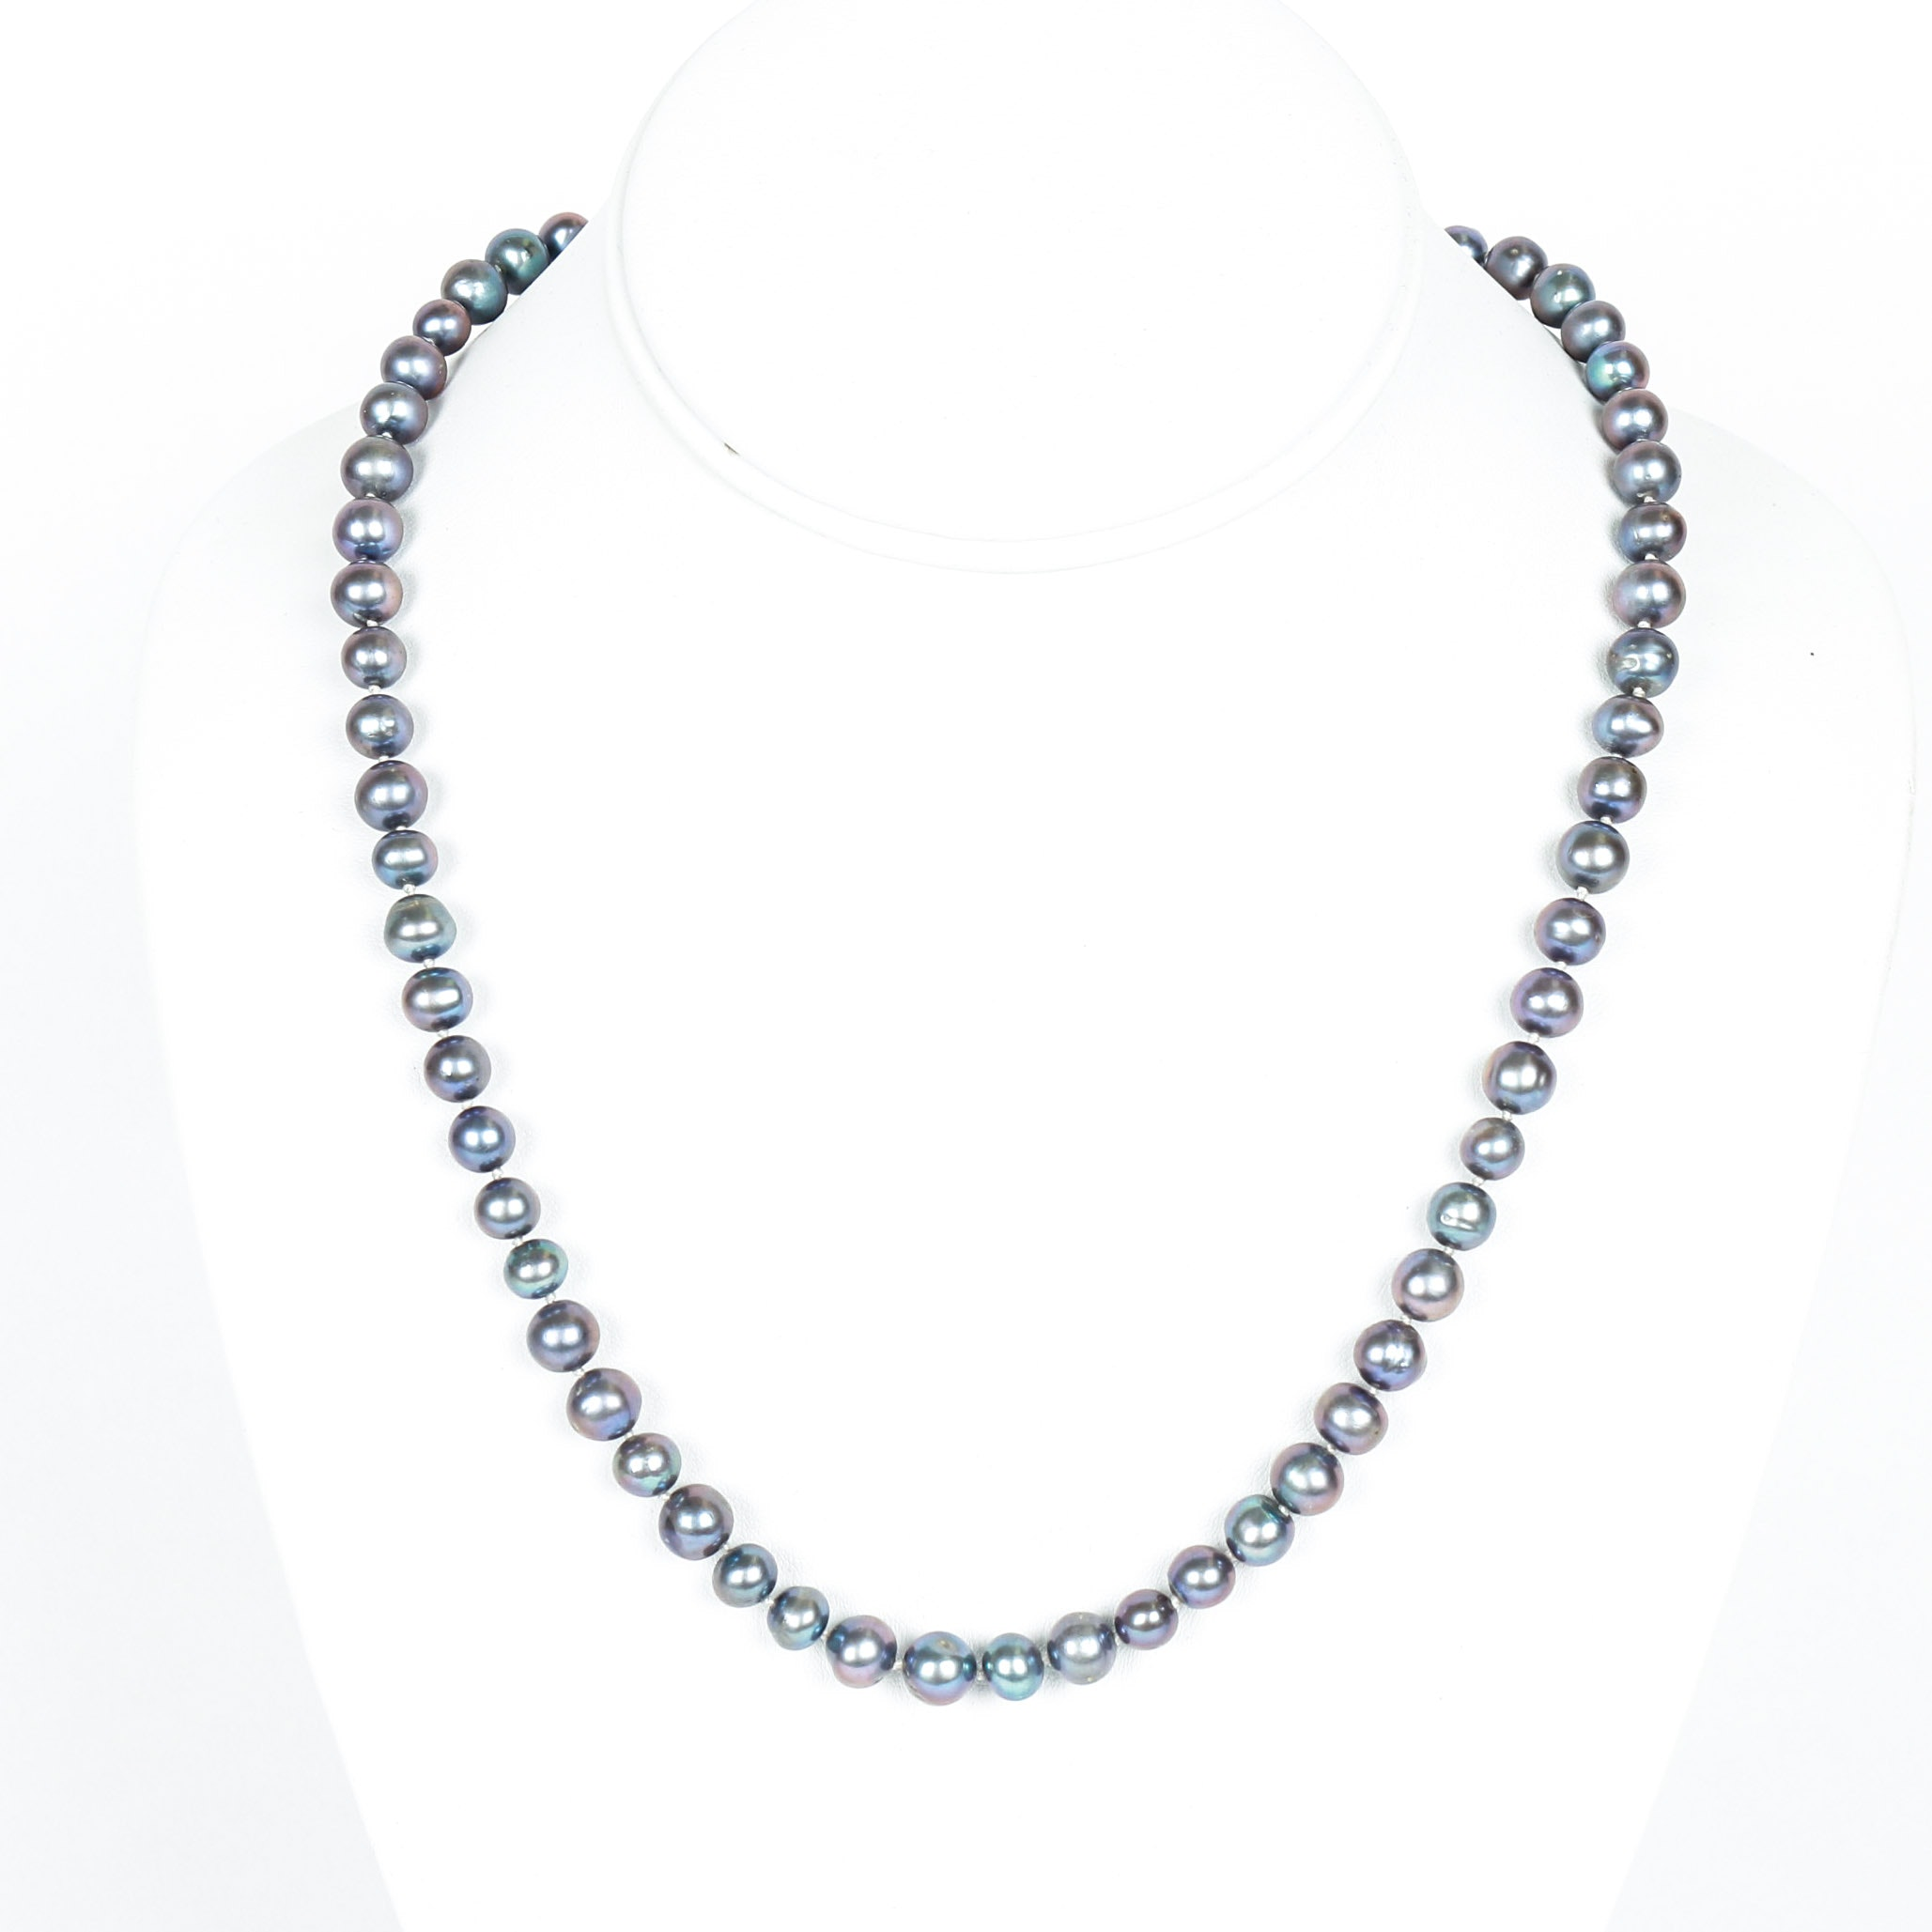 Dyed Freshwater Cultured Pearl Necklace